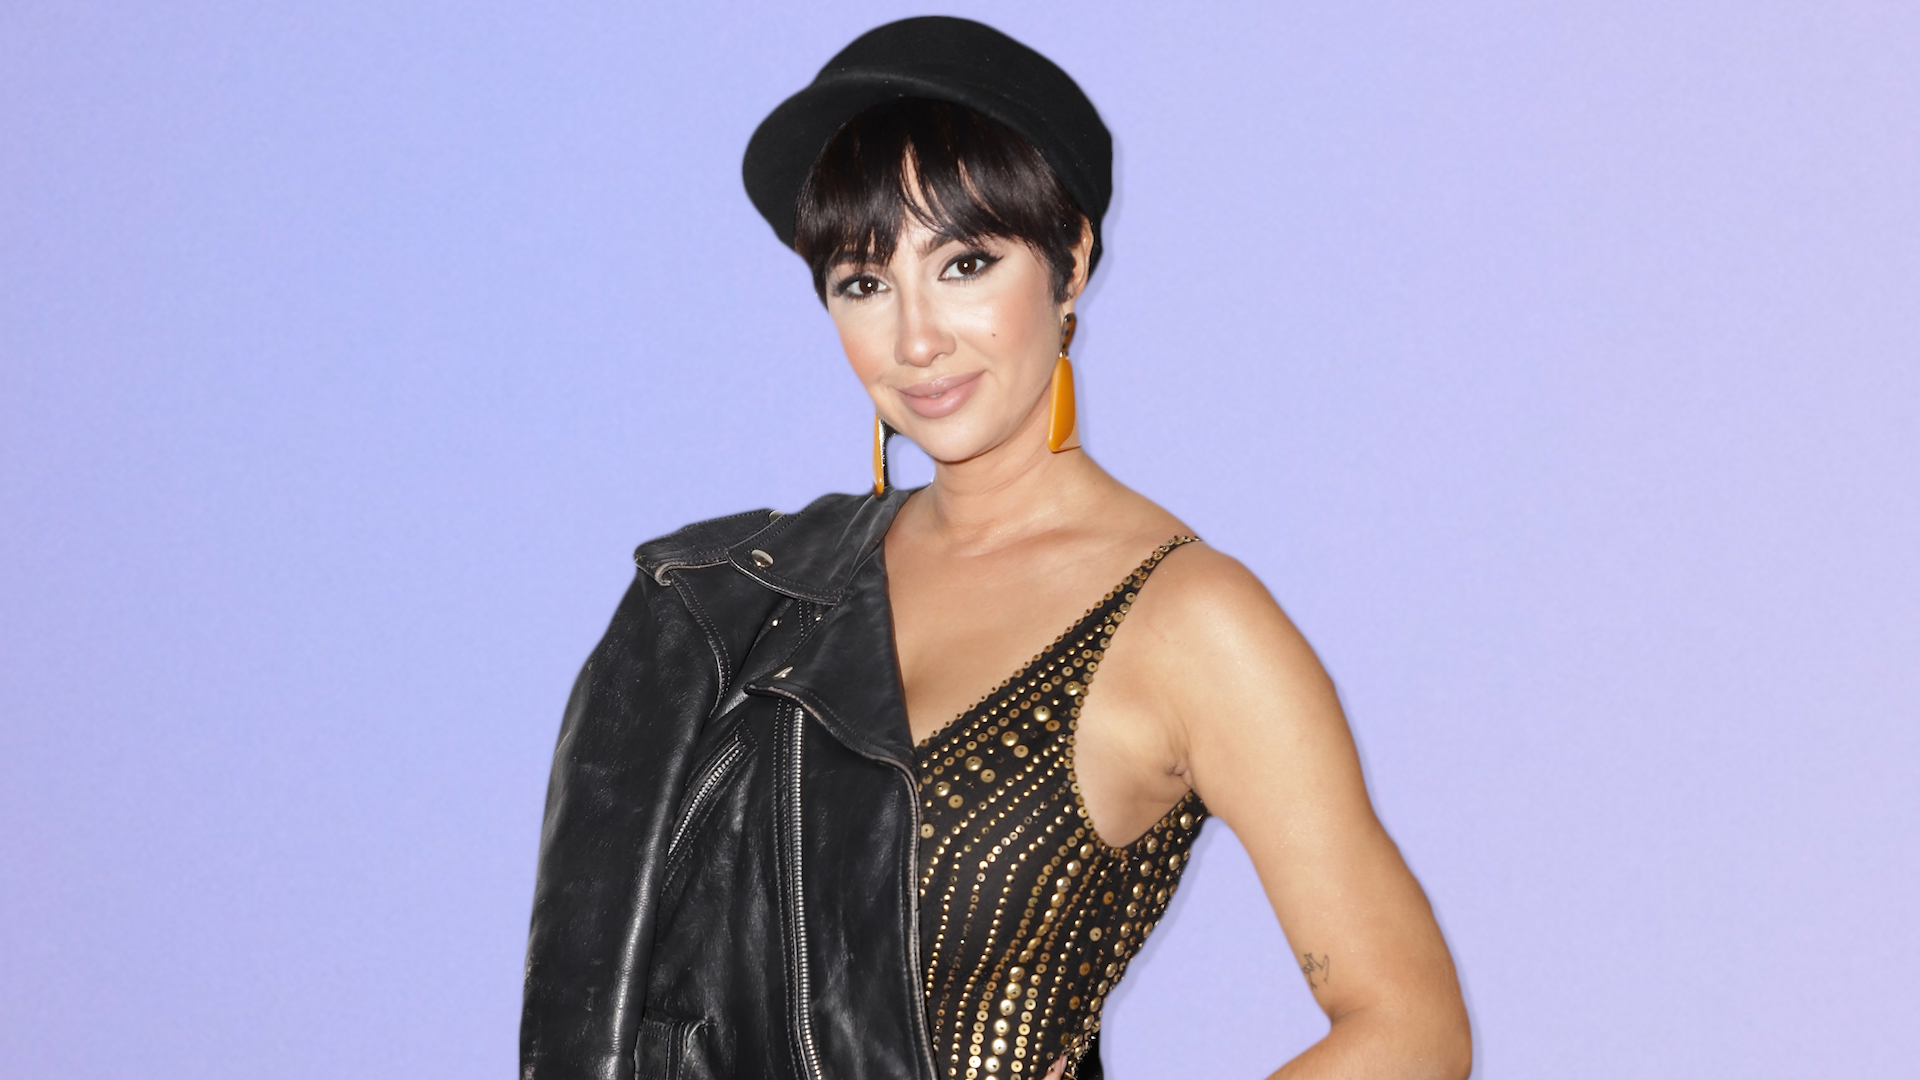 After a Nearly Fatal Car Crash, Jackie Cruz Thought She'd Never Make It in Hollywood